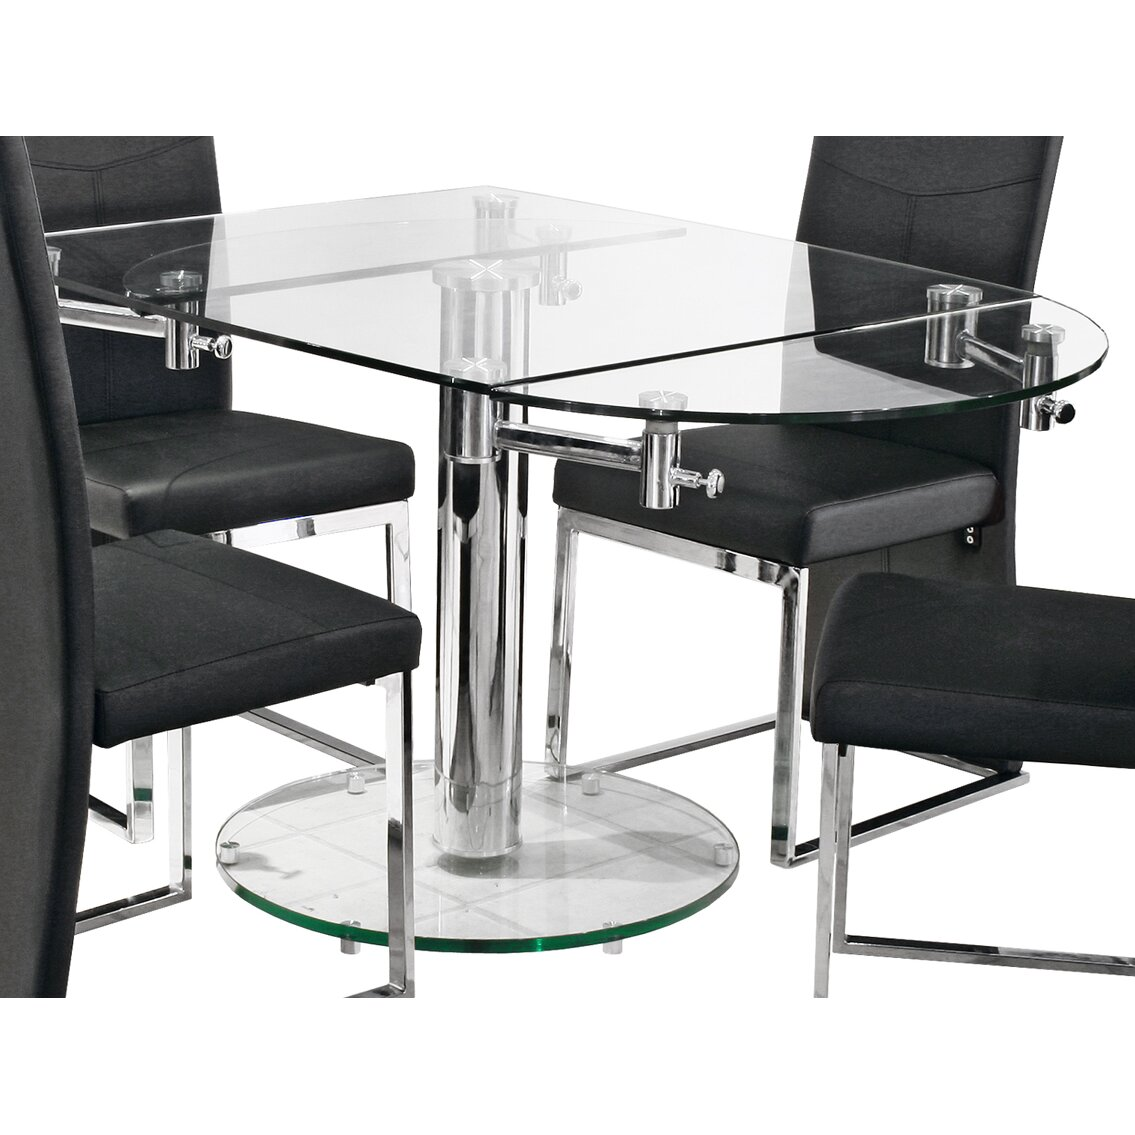 House Additions Extendable Dining Table amp Reviews Wayfair UK : Extendable Dining Table FEB2102 from www.wayfair.co.uk size 1135 x 1135 jpeg 130kB